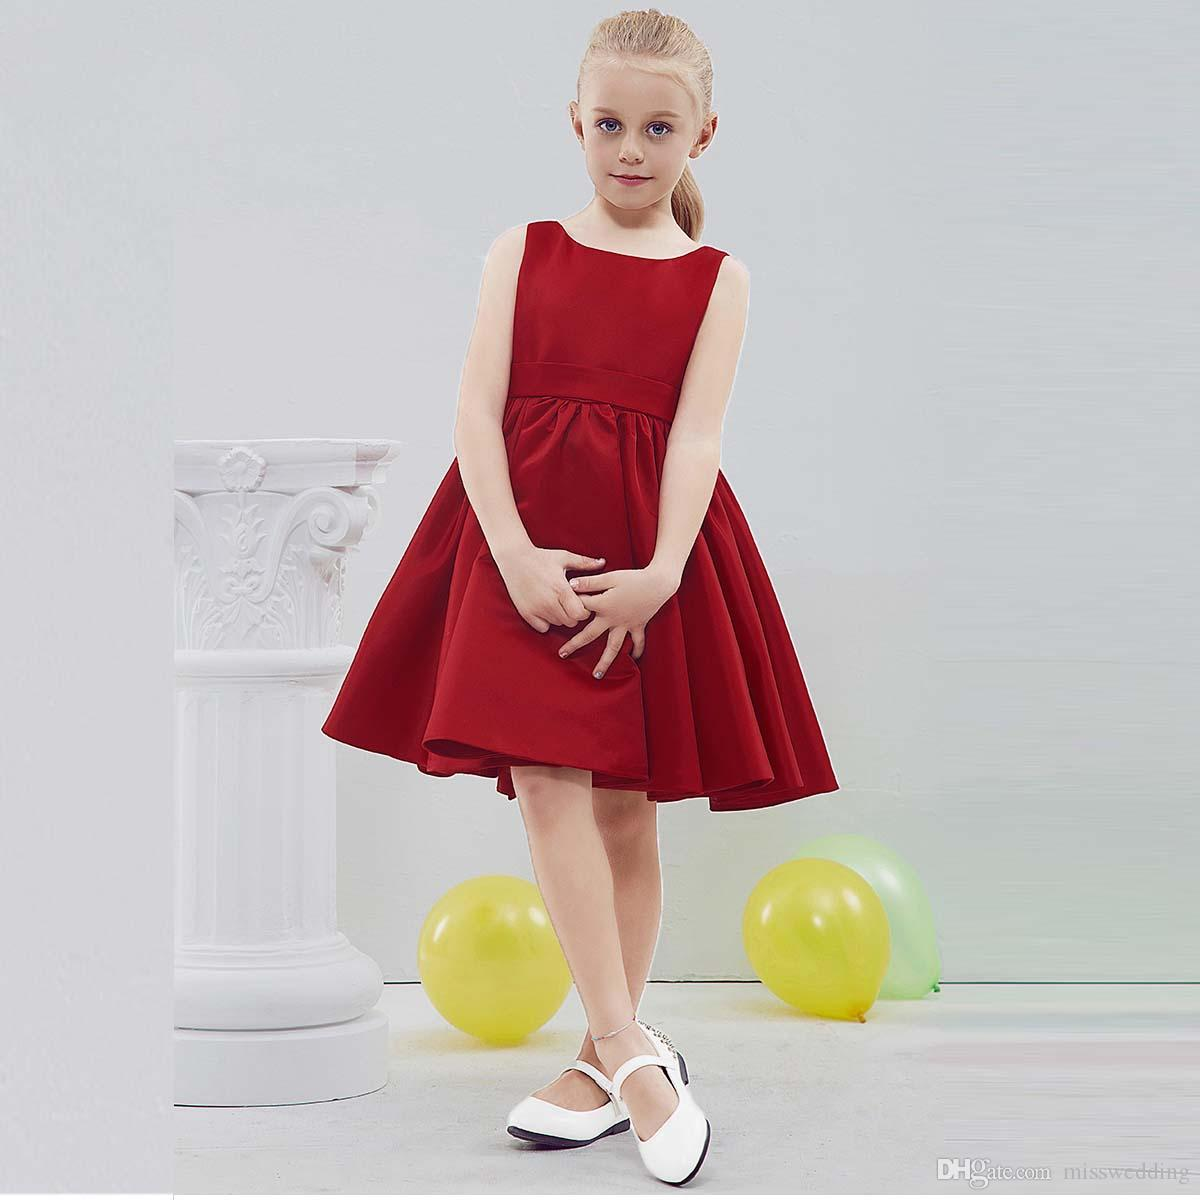 fb60d2f8381 Misswedding 2019 Style Simple Design Small Girls  Dress With Bow ...